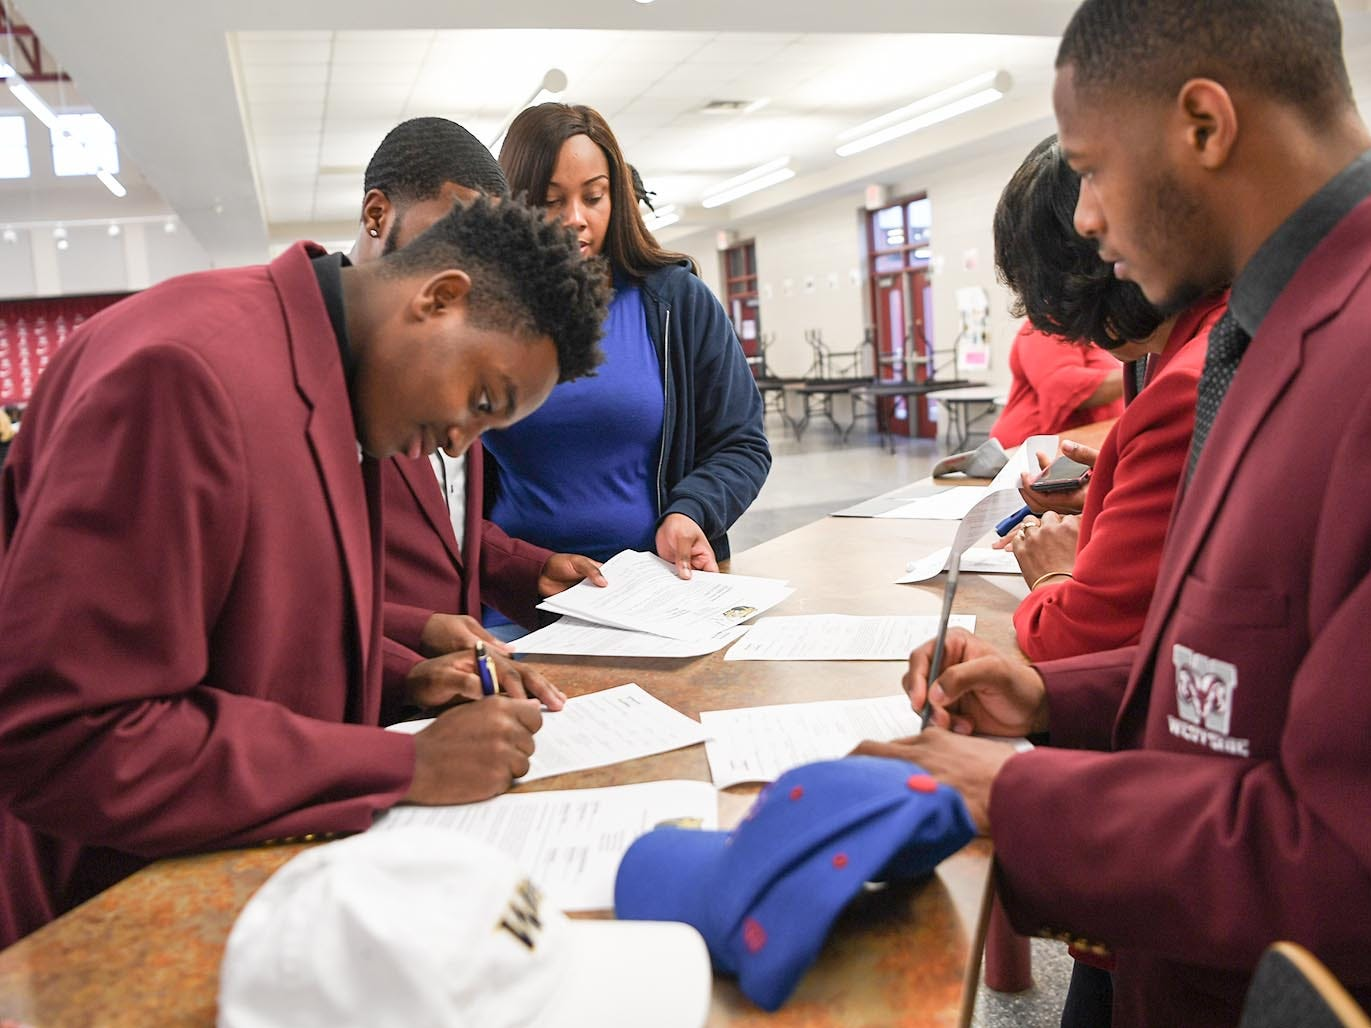 Wingate University signee Nasir Evans, left, fills out paperwork near Presbyterian College signee Paul Johnson, right, and five other teammates from Westside High School football on National Letter of Intent day at Westside High School in Anderson Wednesday. Newberry College signees Zach Howard, Devante Gambrell, Wingate University signees Nasir Evans and K.D. Fant-Miles, Presbyterian College signees Paul Johnson and Tim Johnson, and Florida Intstitute of Technology signee Ty Ty Danzy.